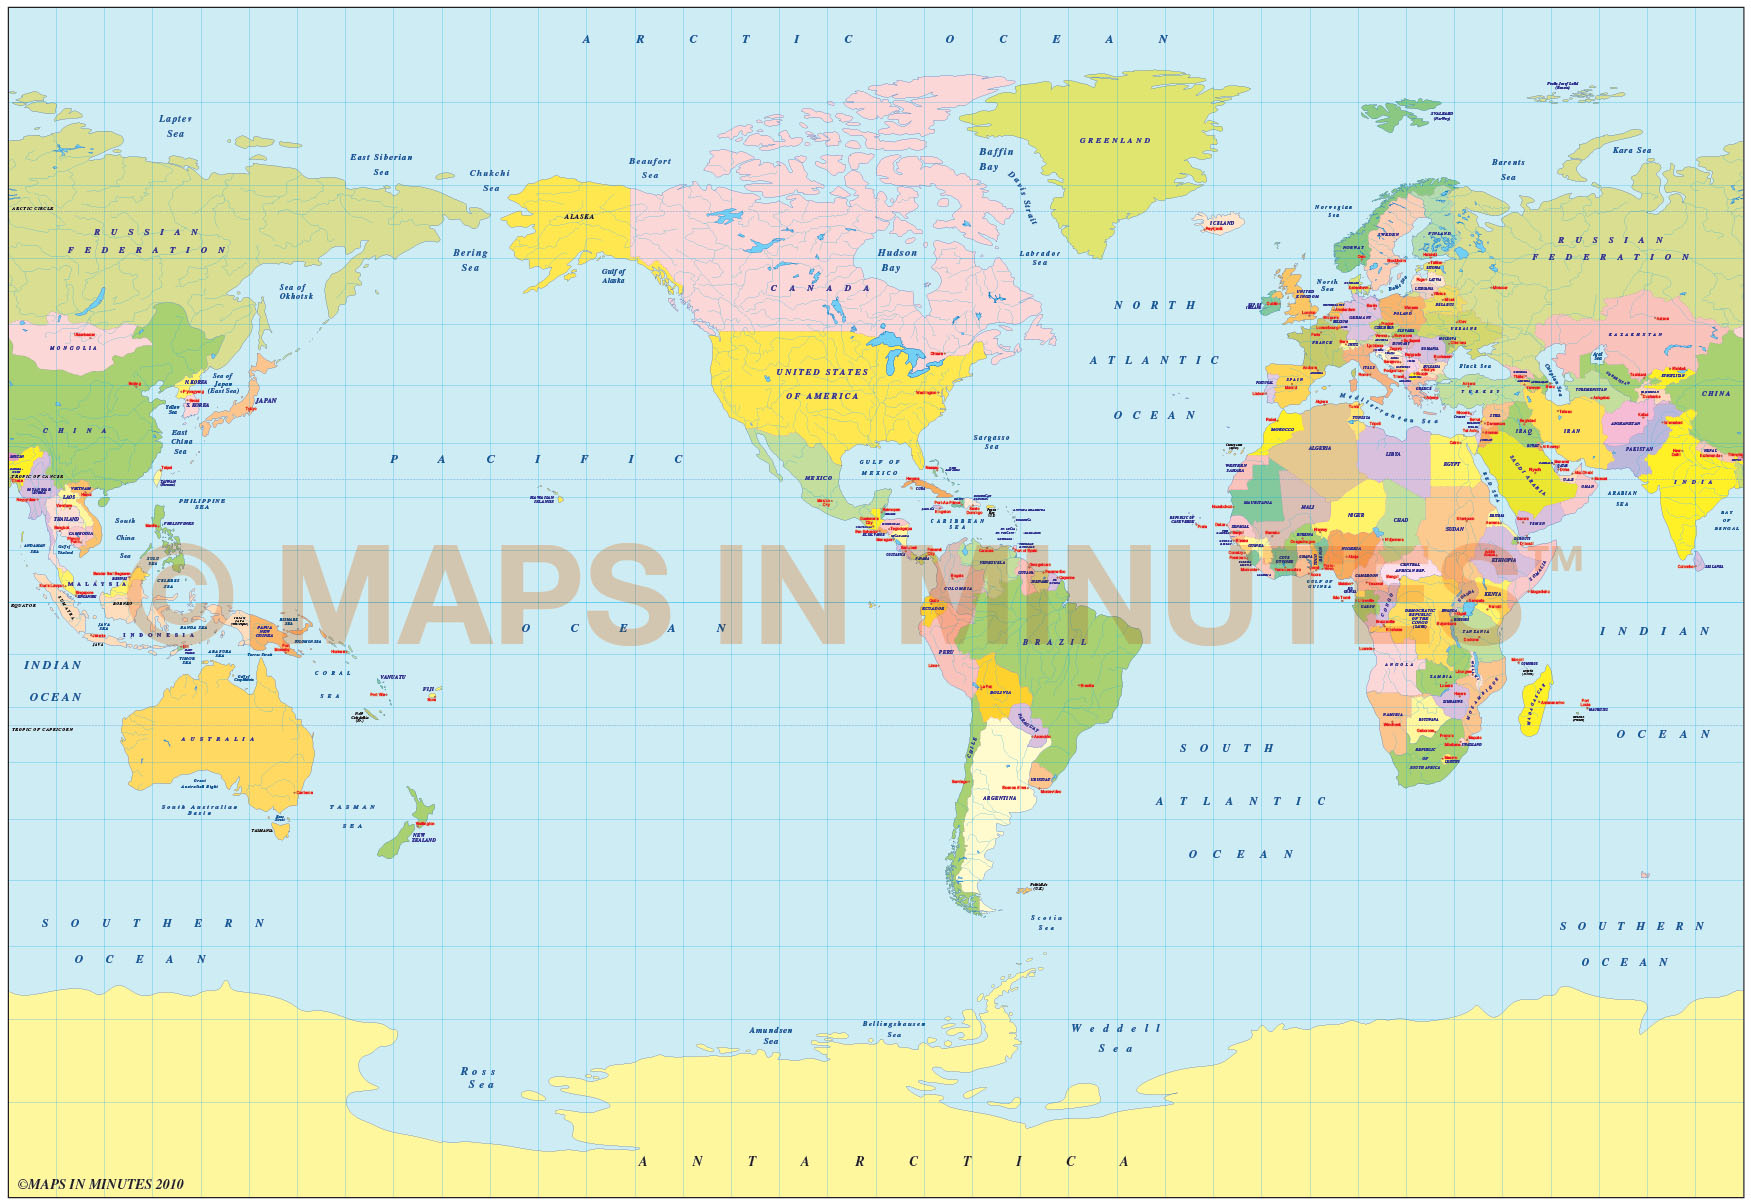 Royalty free bsam projection political world map small scale us vector world map bsam projection small scale political us centric gumiabroncs Gallery